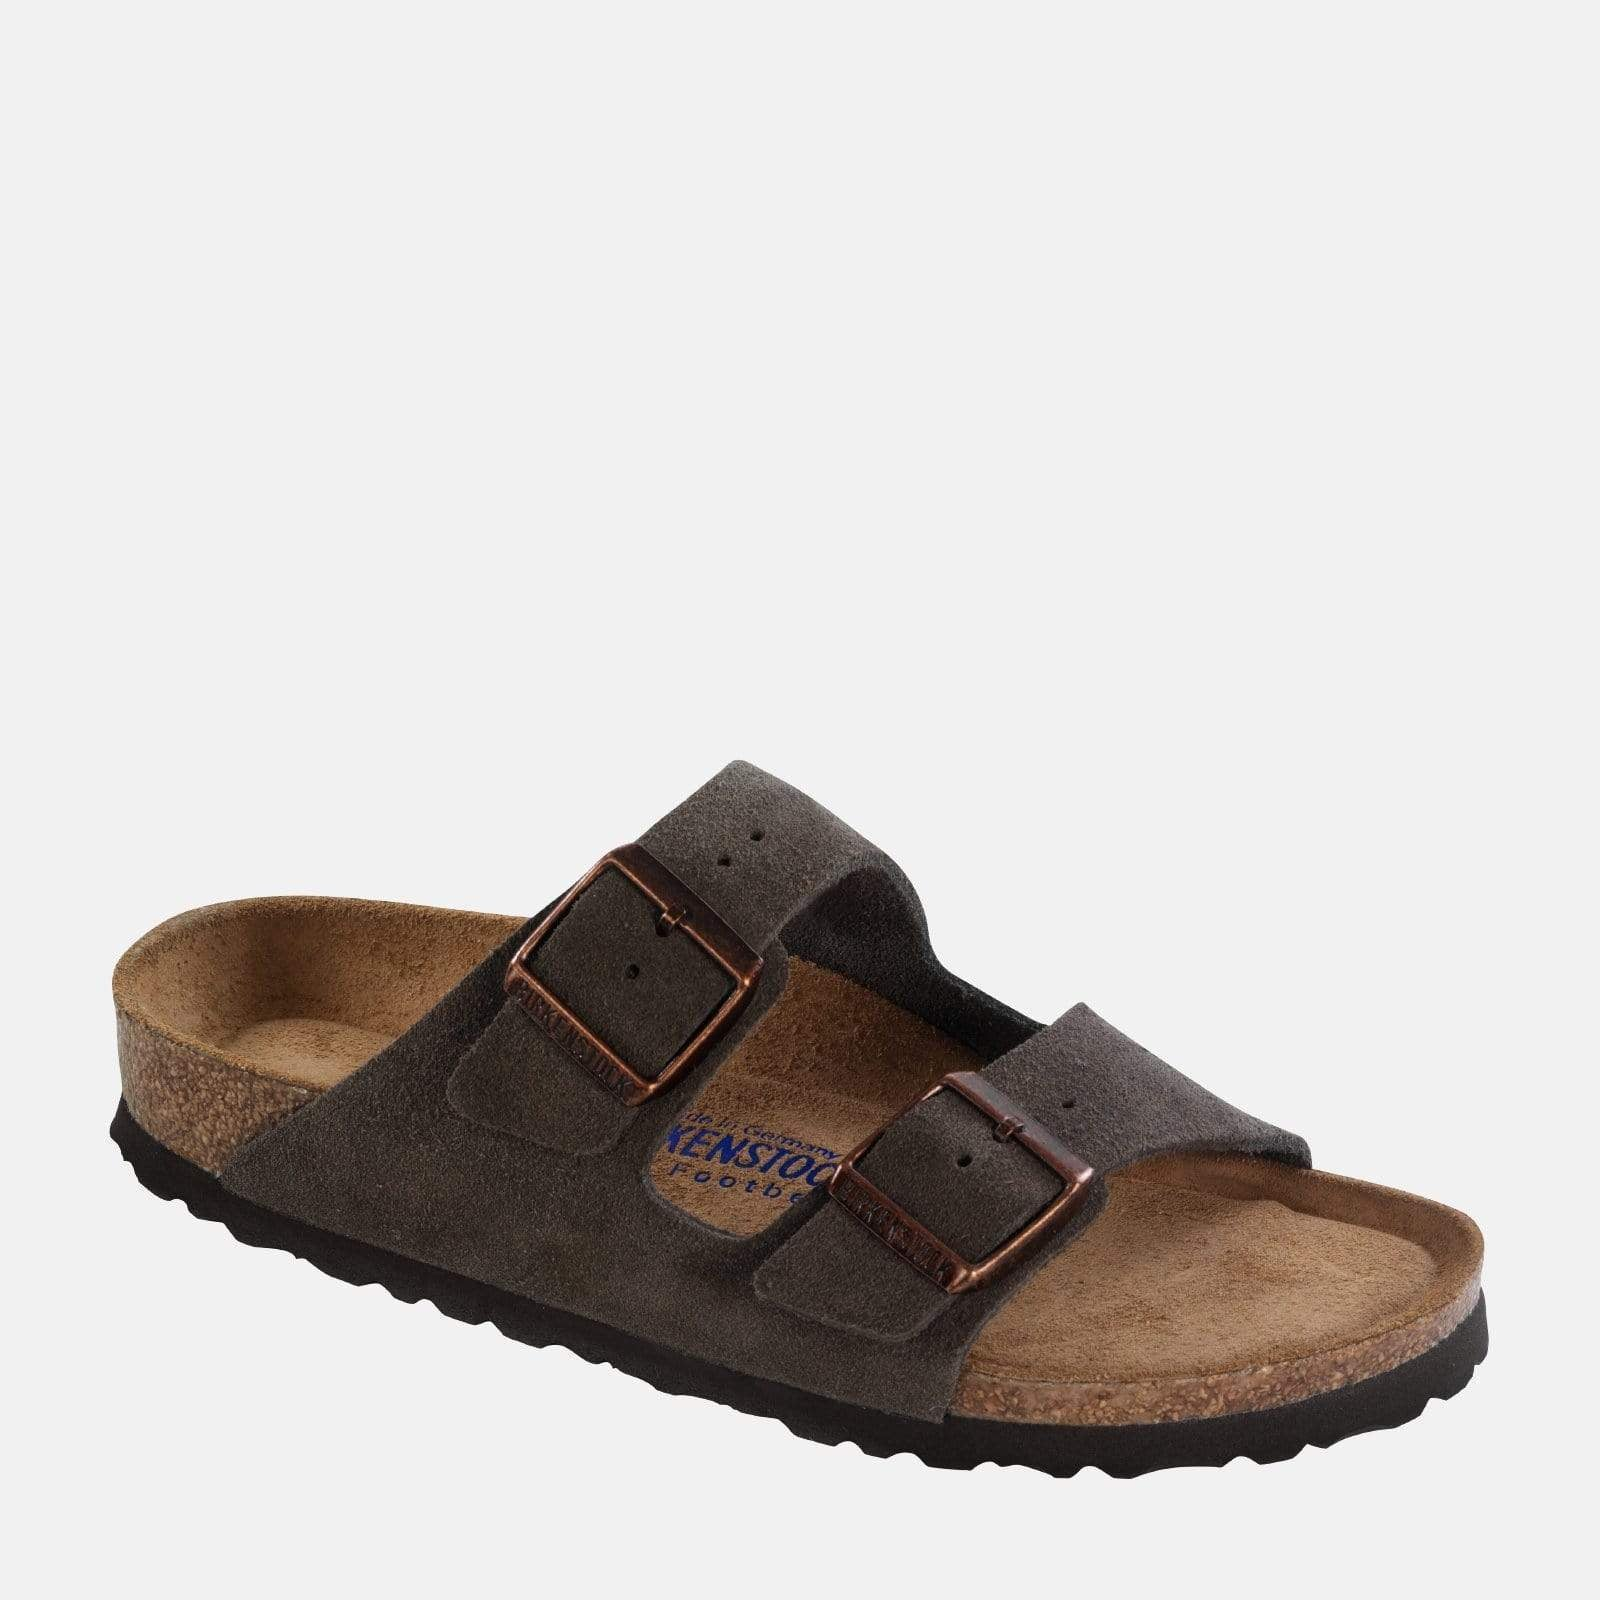 Birkenstock Footwear Arizona Soft Footbed Narrow Fit Mocha Suede 951313